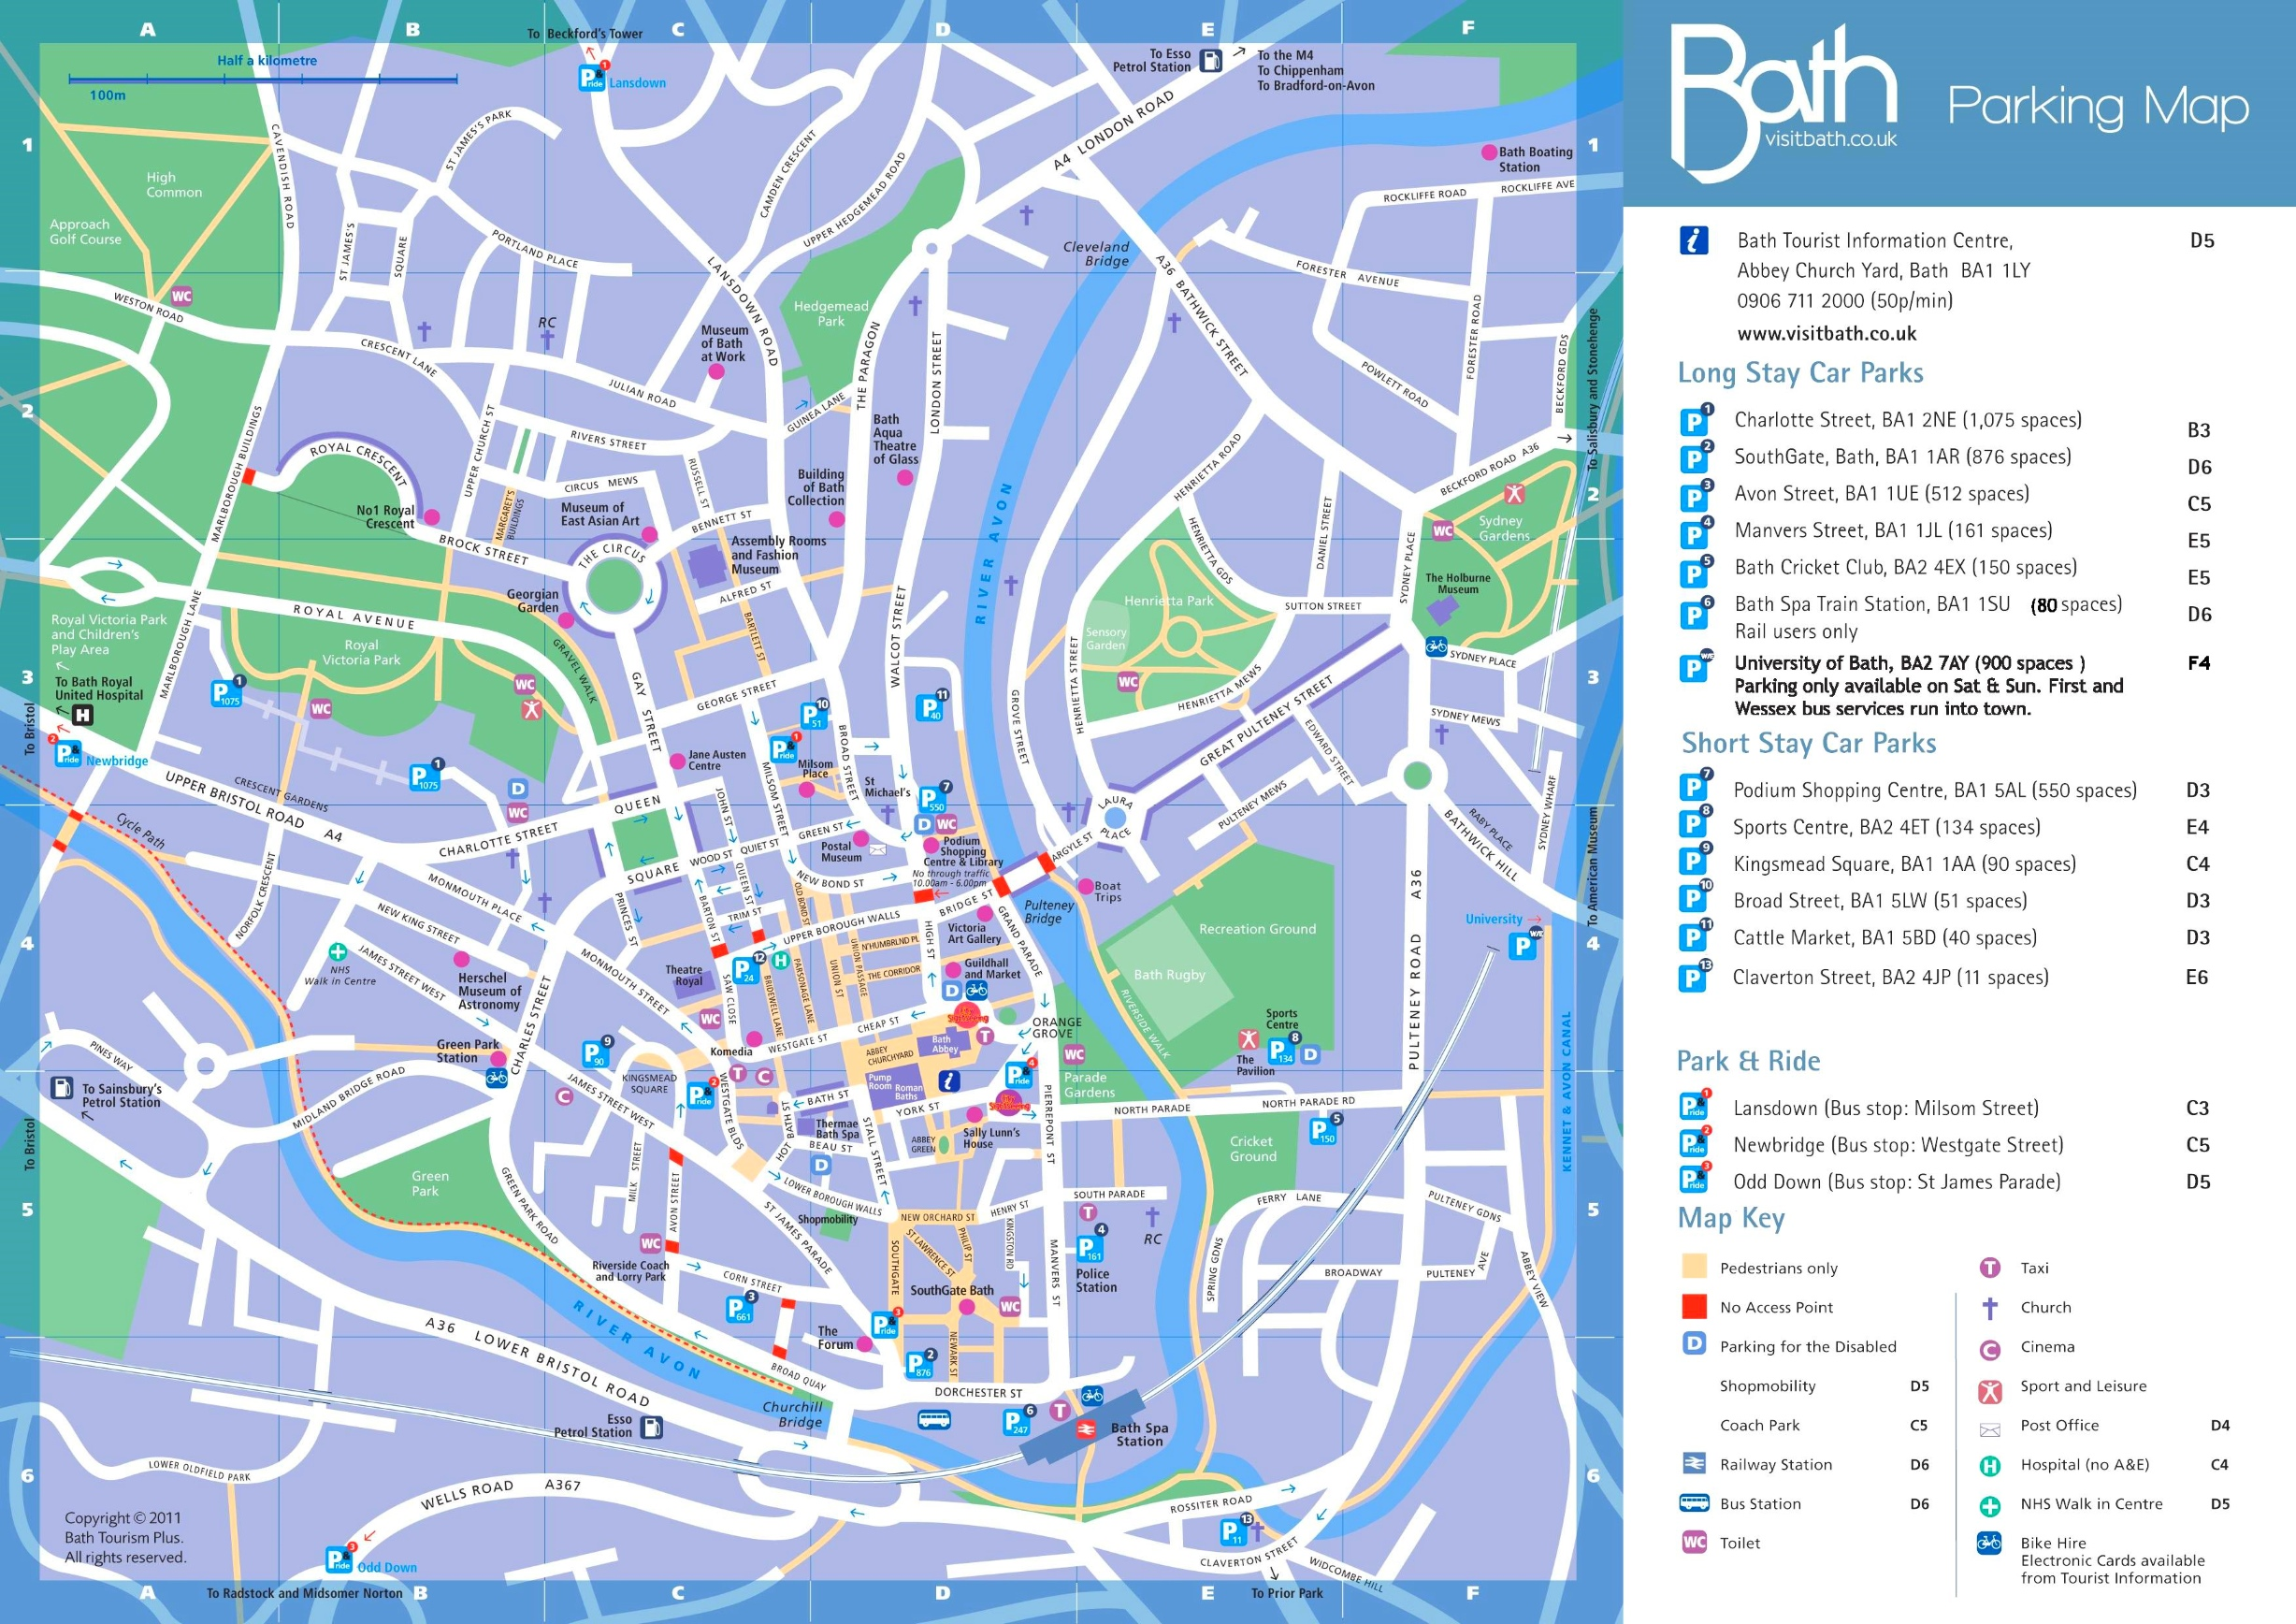 Bath Parking Map